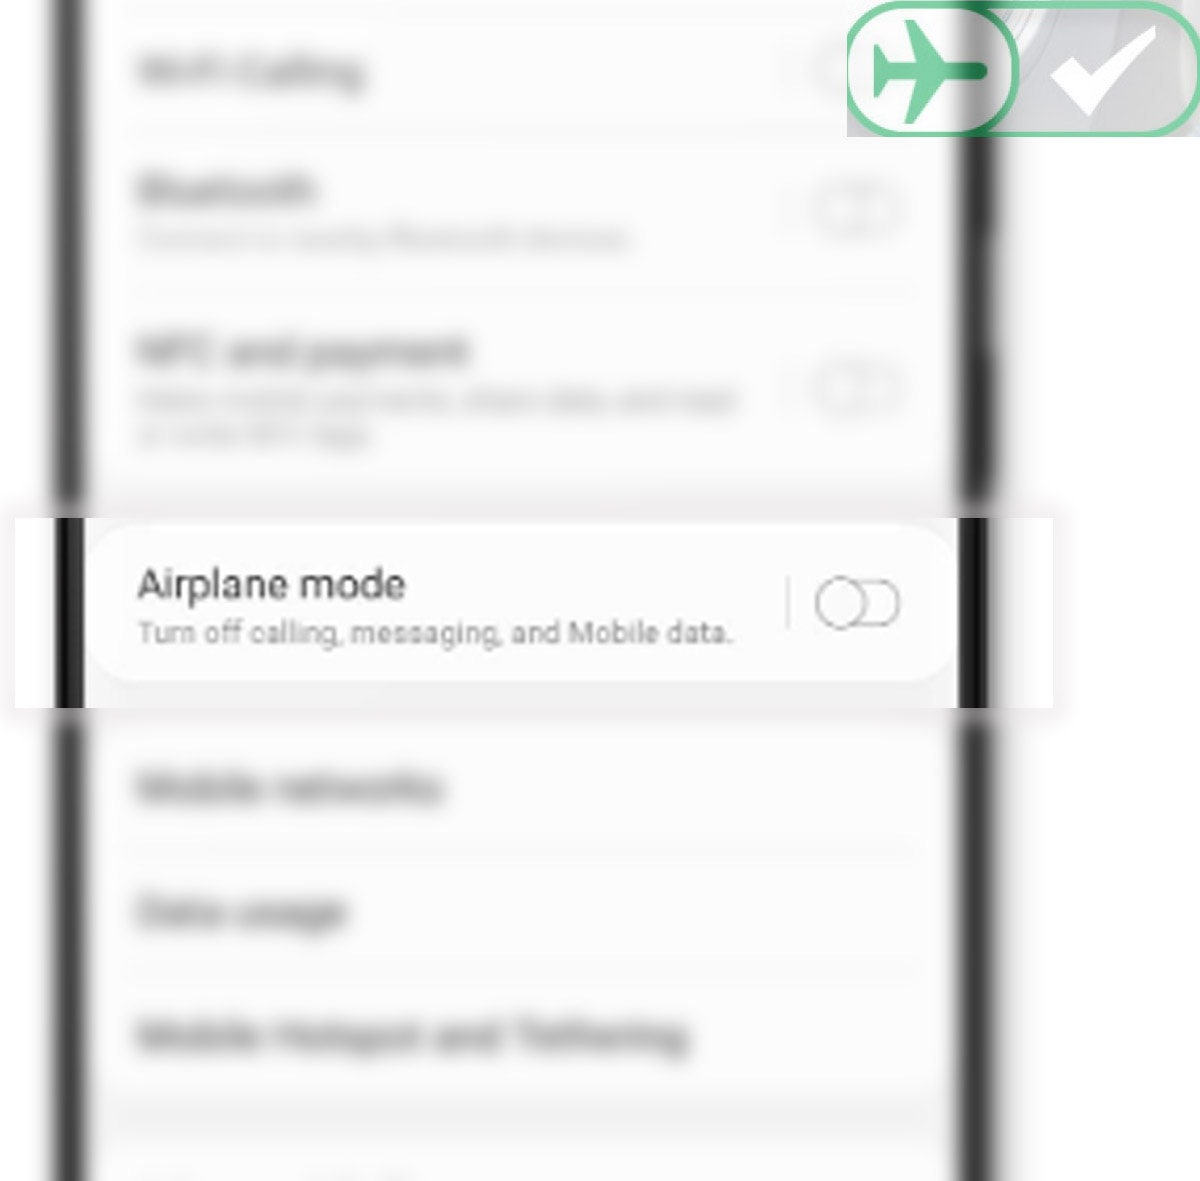 fix galaxy s20 overheating problem - enable airplane mode